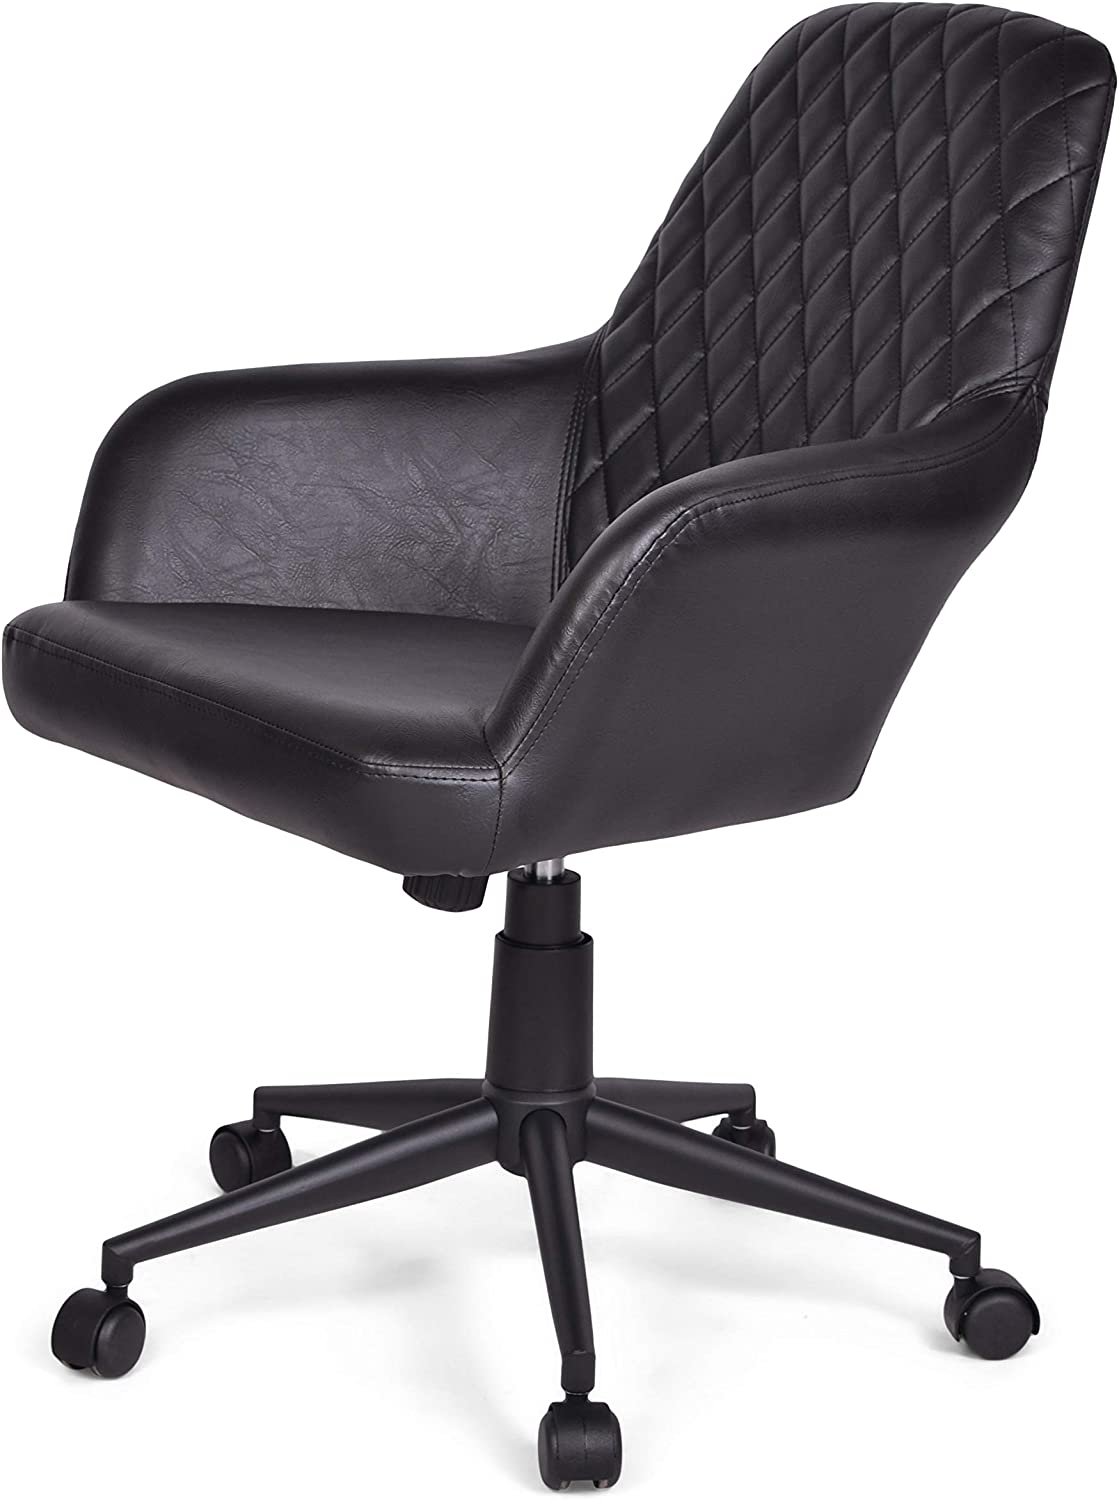 Simpli Home Goodwin Swivel Adjustable Executive Computer Office Chair in Distressed Black